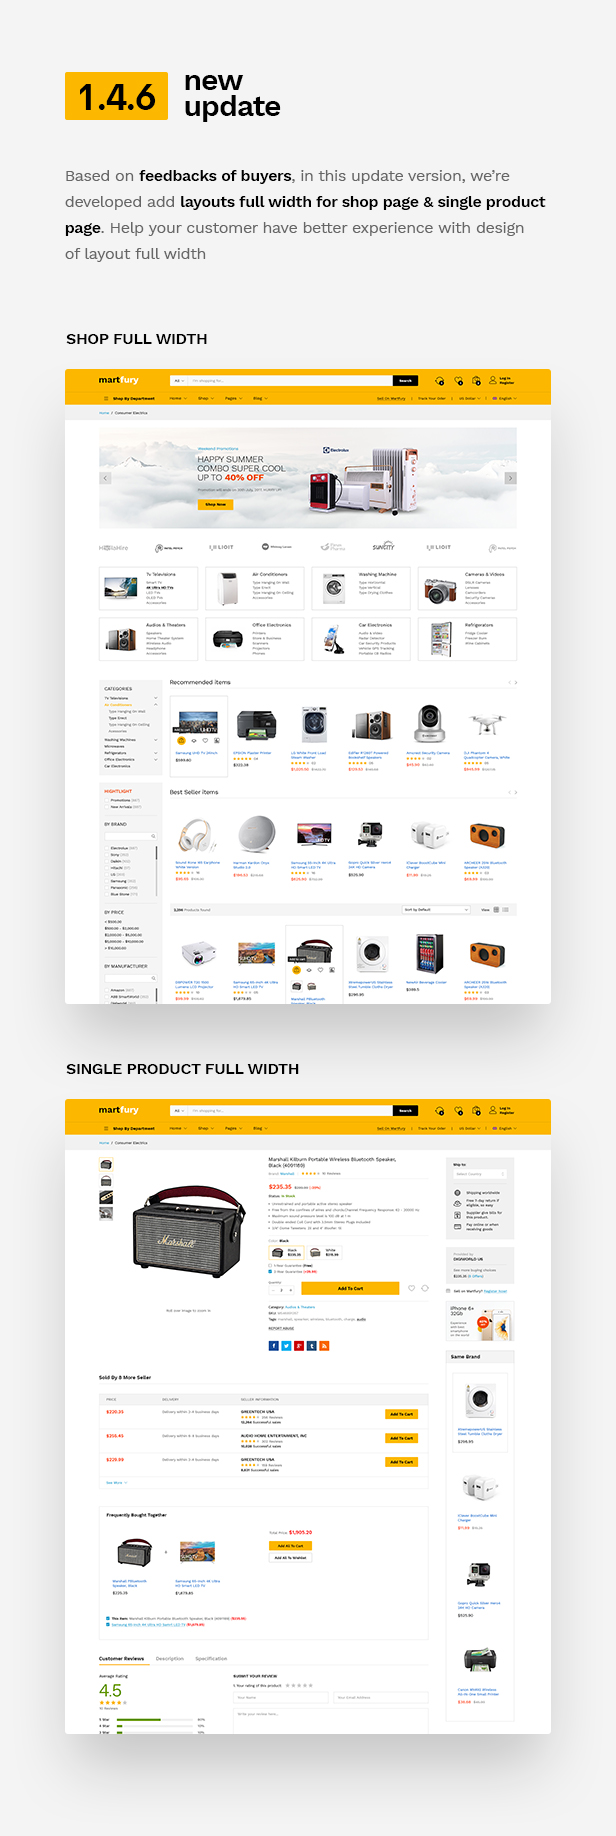 wp update 1.4.6 - Martfury - WooCommerce Marketplace WordPress Theme